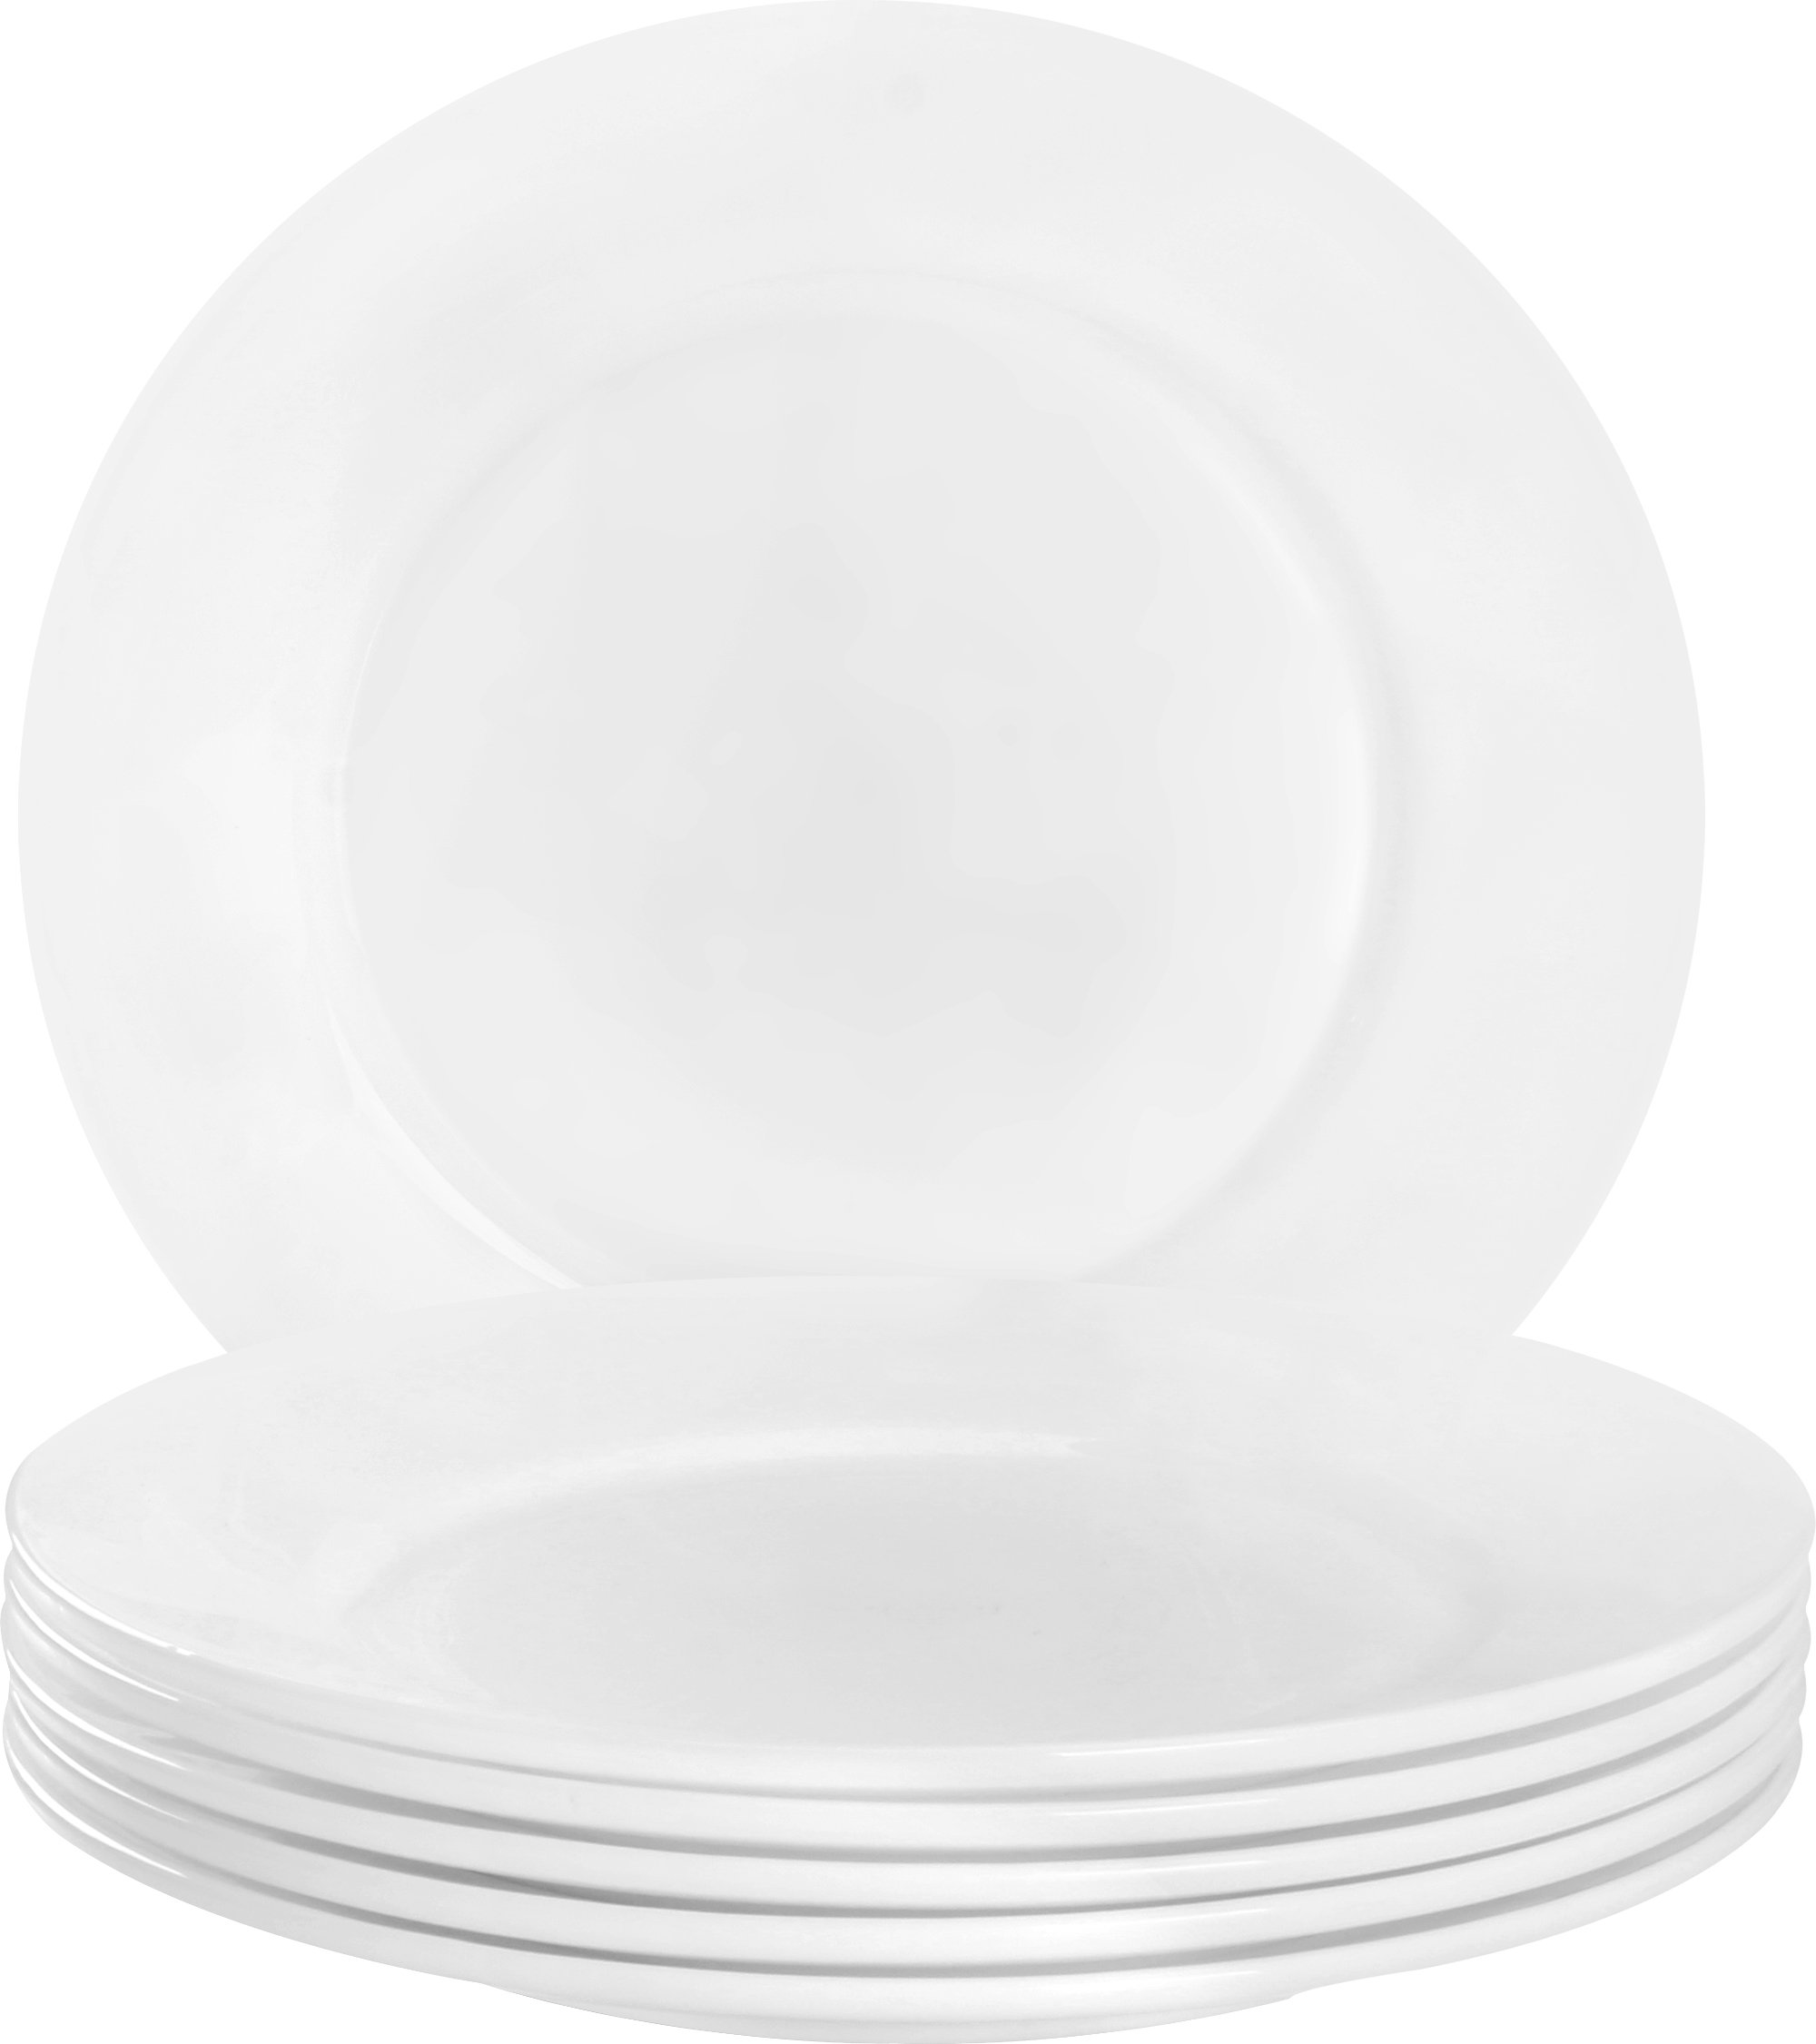 Utopia Kitchen 6 Pieces Plate Set - Dishwasher Safe Opal Glassware - Microwave/Oven Friendly